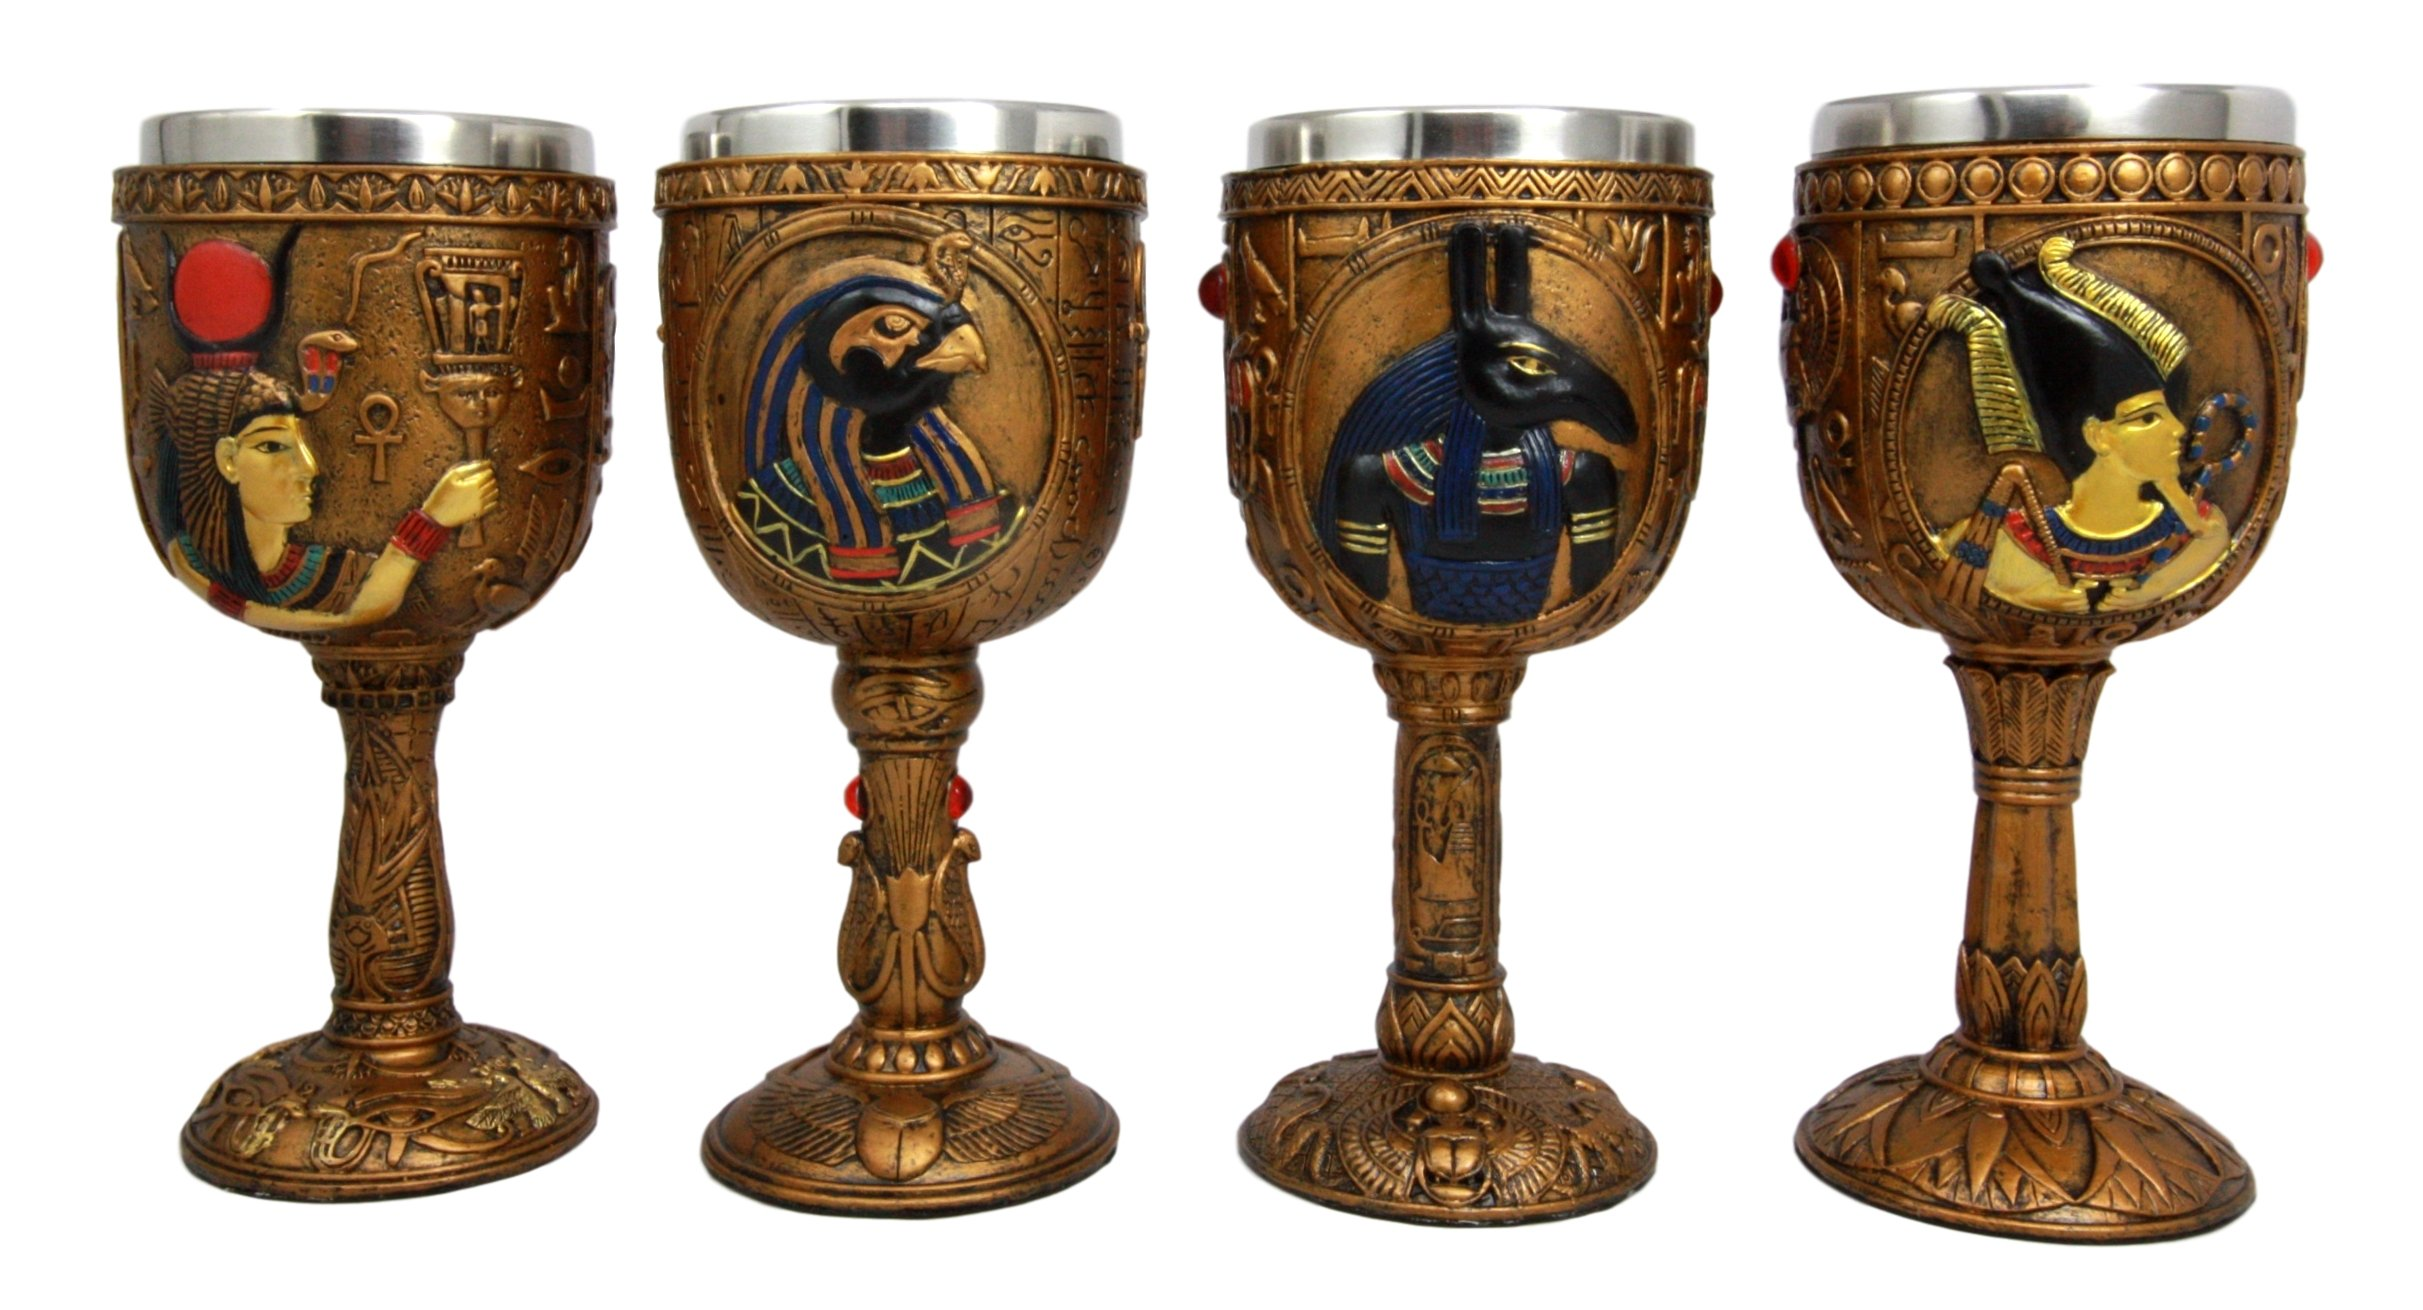 Atlantic Collectibles Ancient Egyptian Deities Horus Hathor Seth and Osiris 6oz Resin Wine Goblet Chalice With Stainless Steel Liner Set of 4